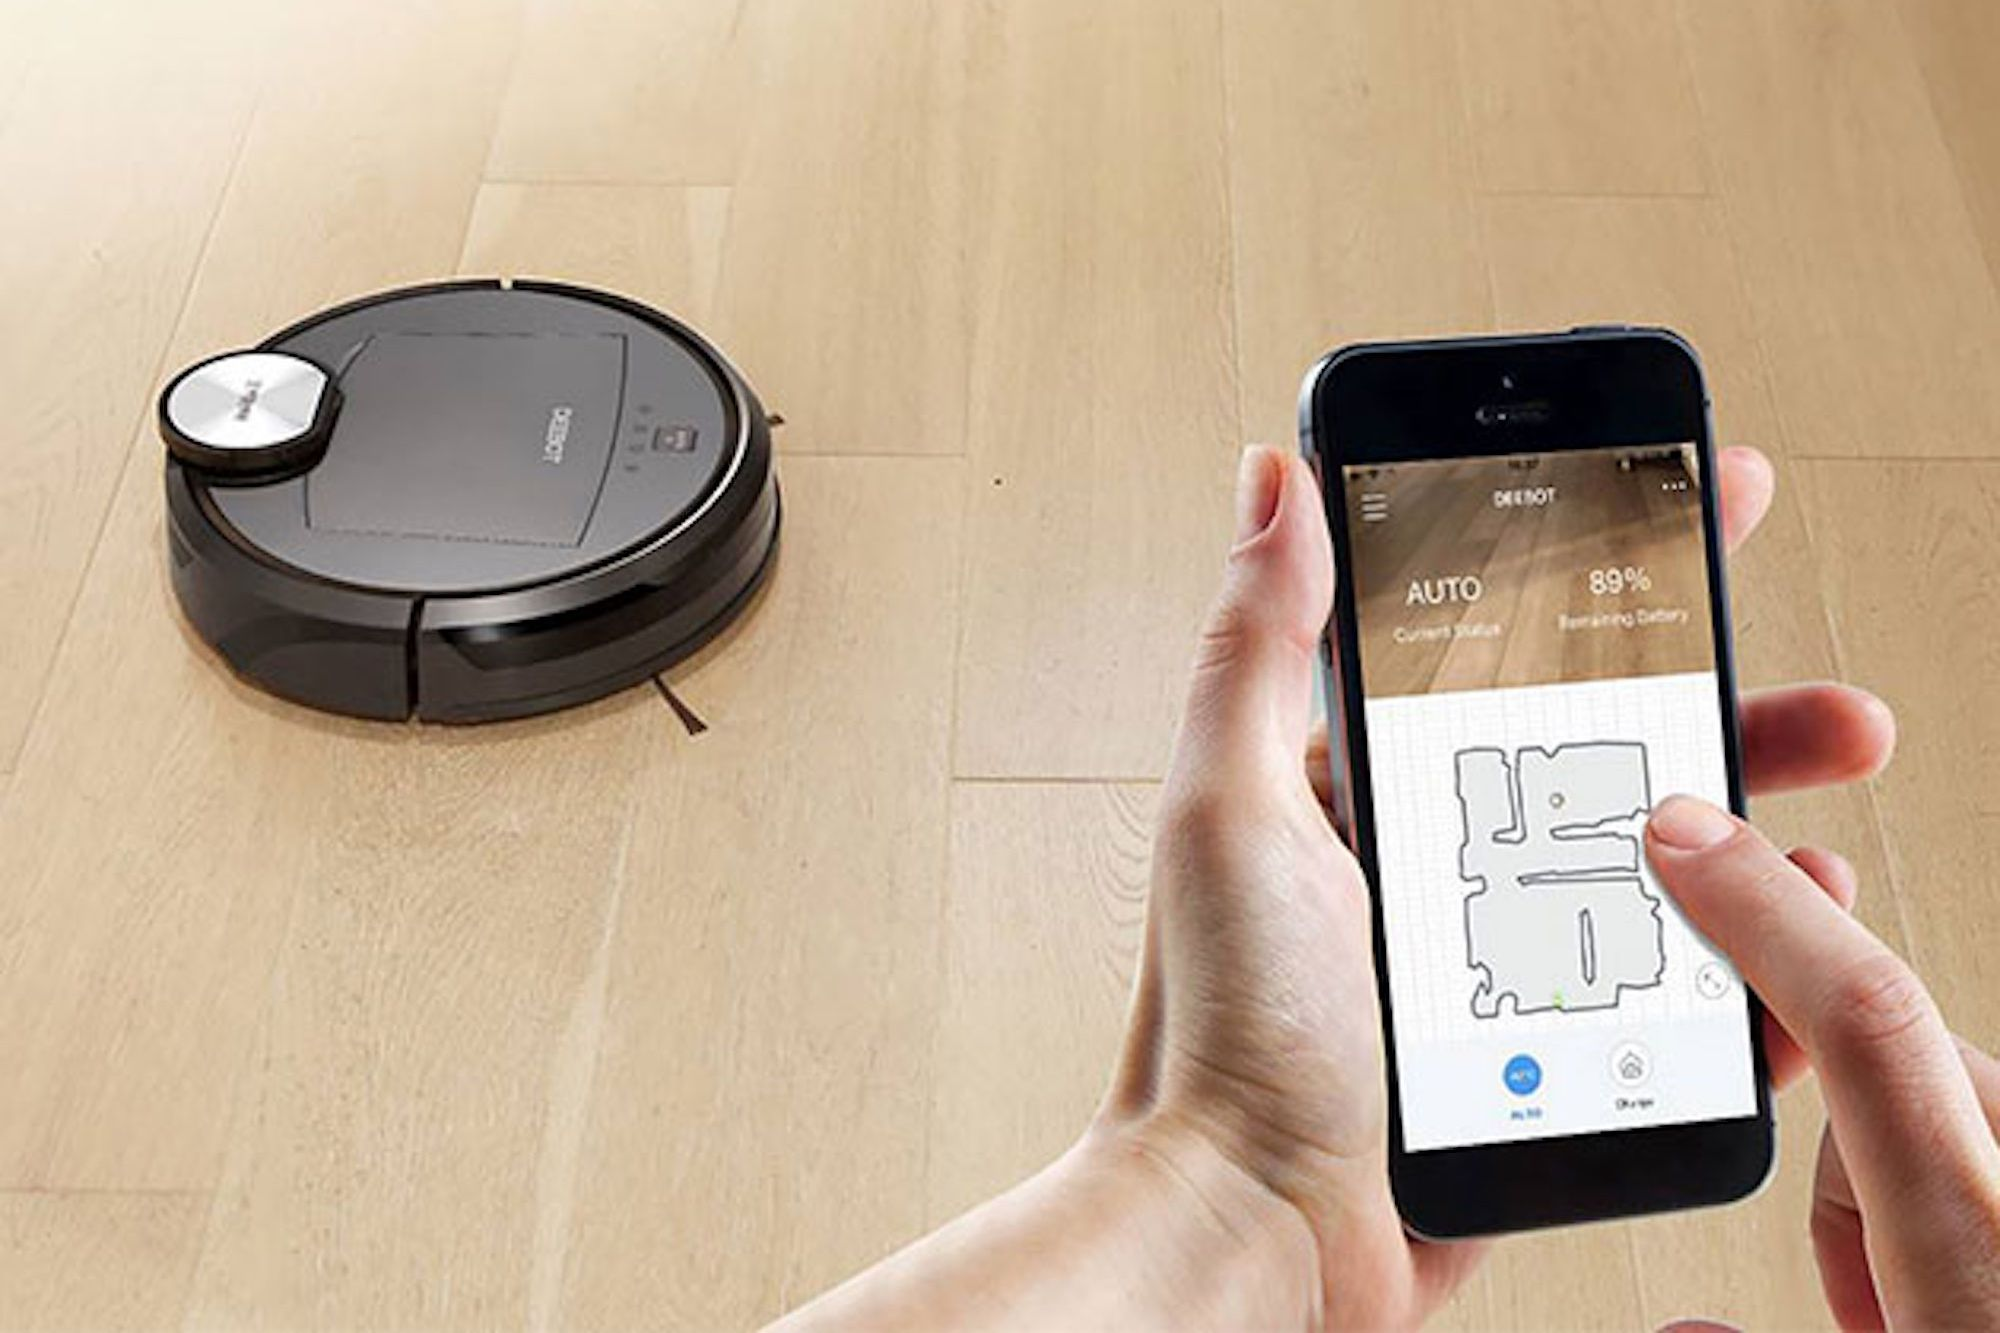 This Robot Vacuum Cleans Your House While You're At Work